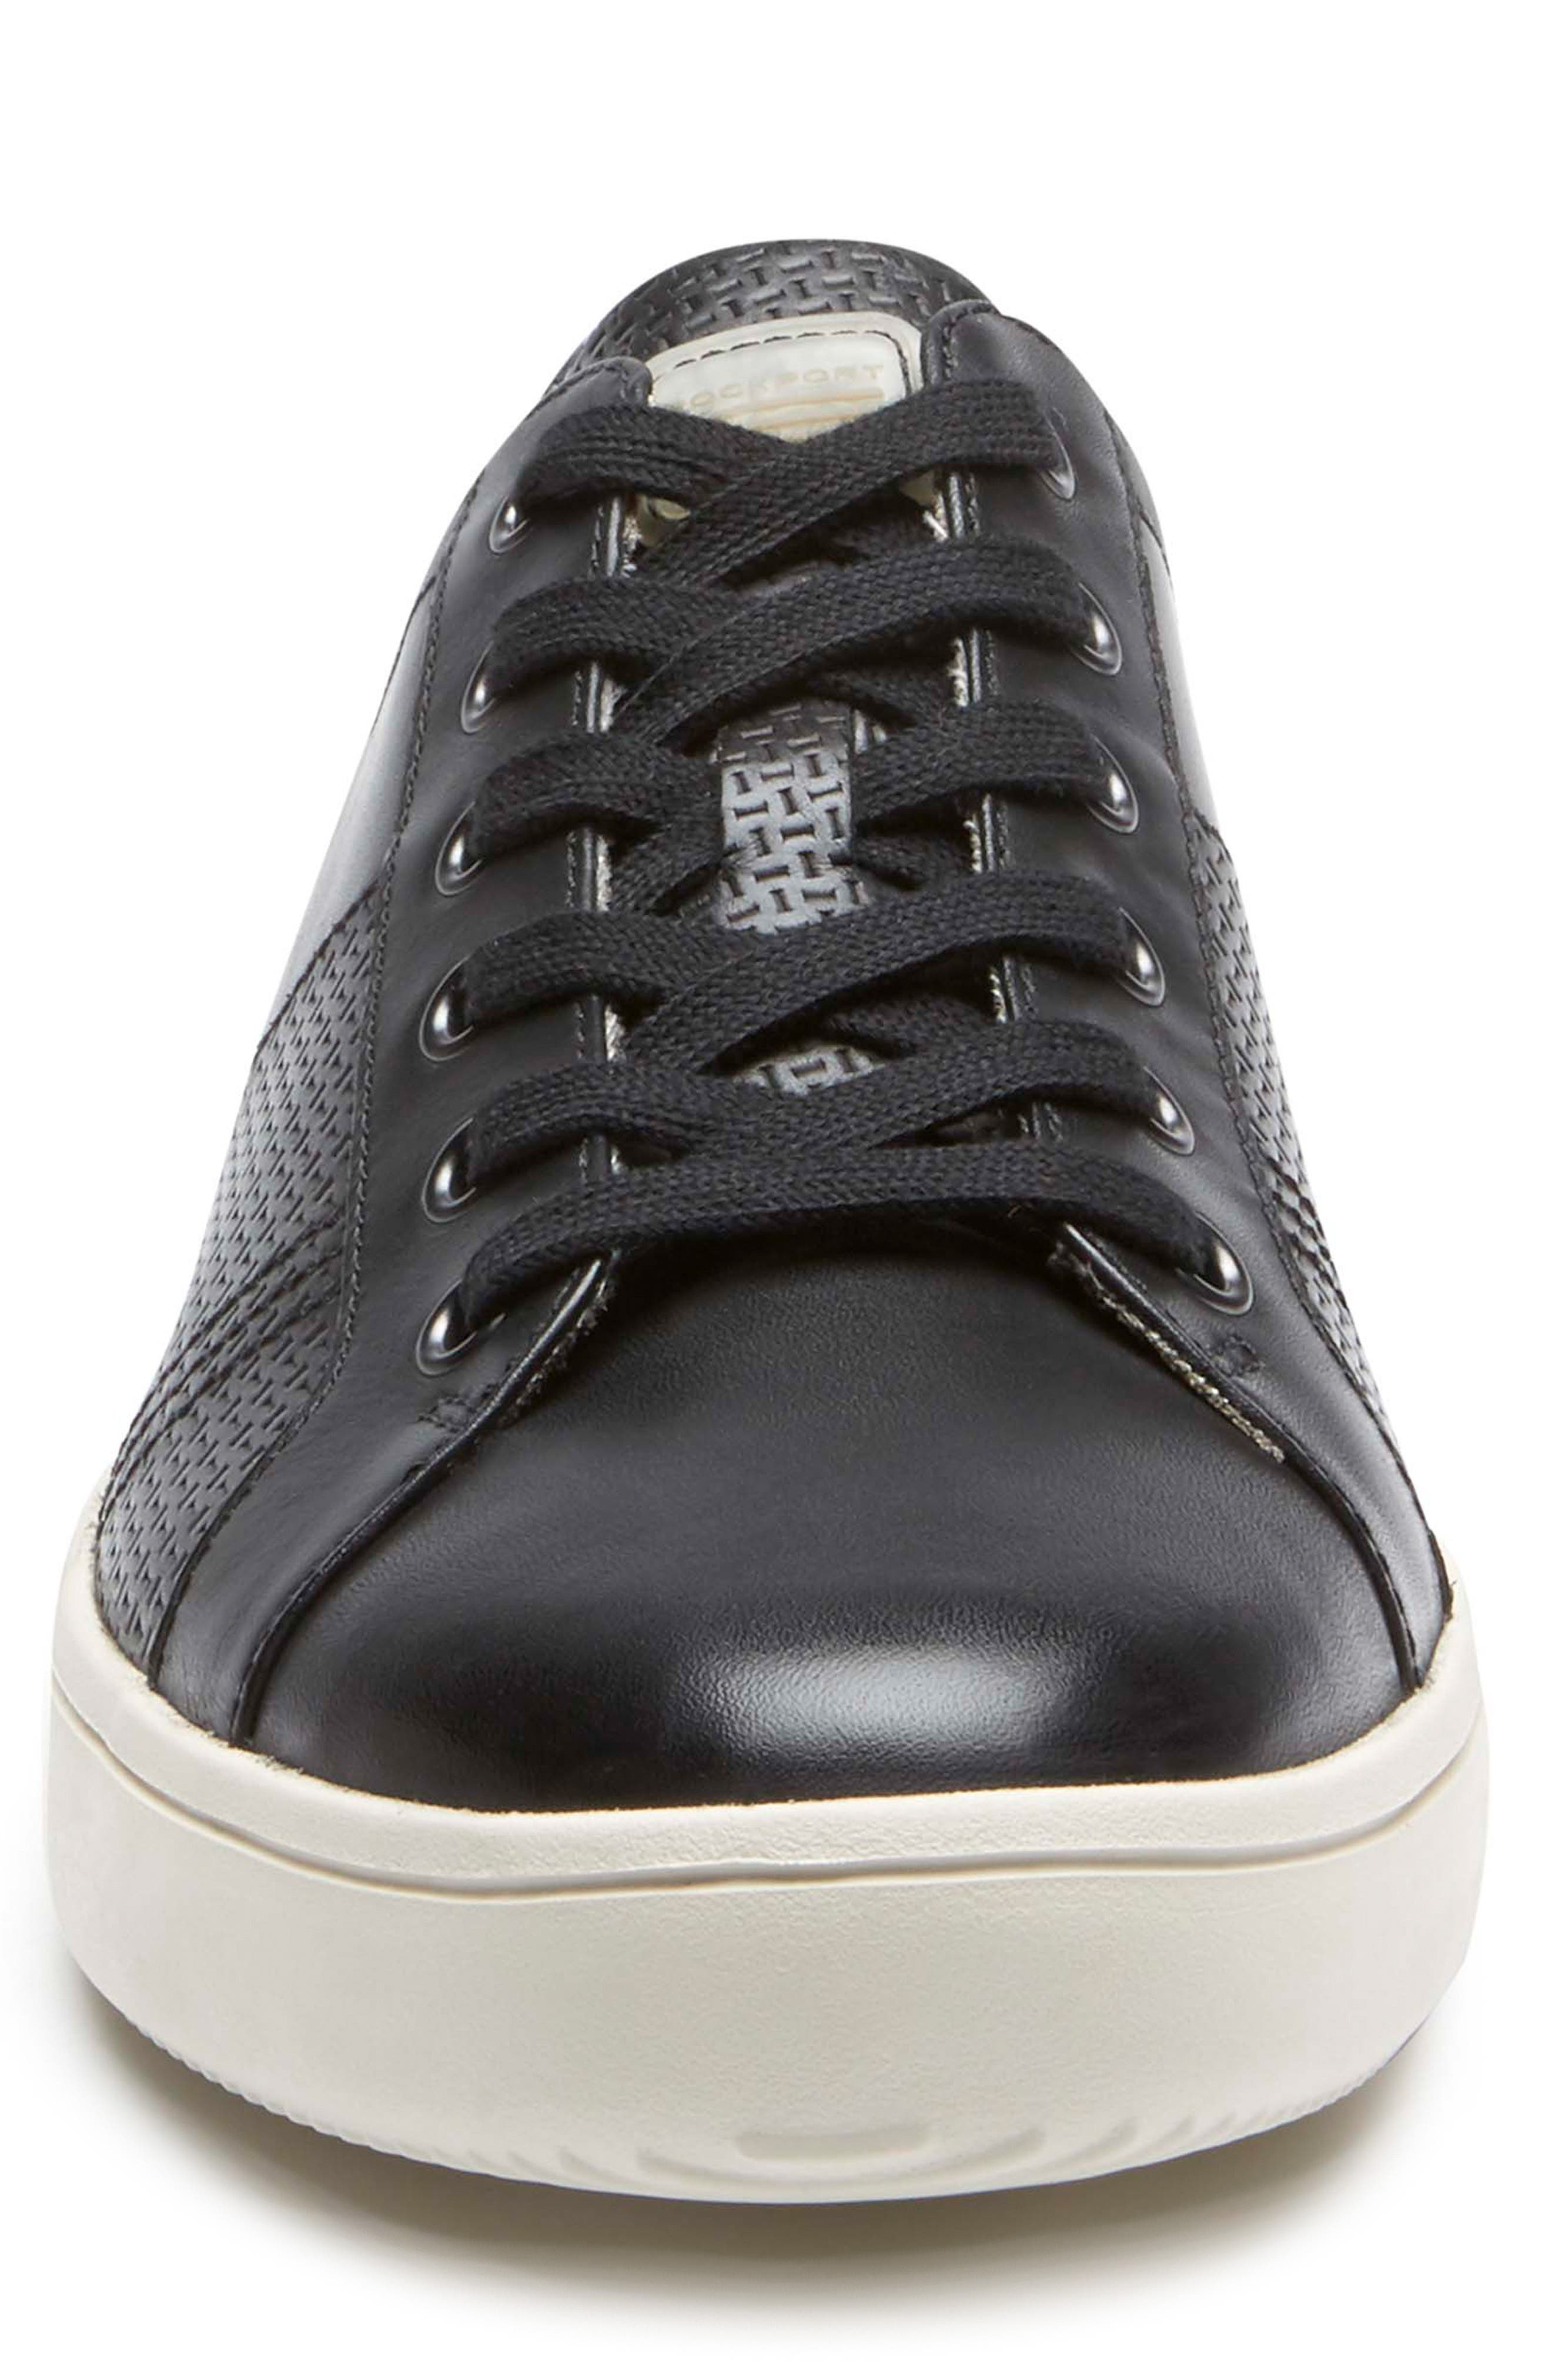 City Lites Collection Lace-Up Sneaker,                             Alternate thumbnail 4, color,                             001